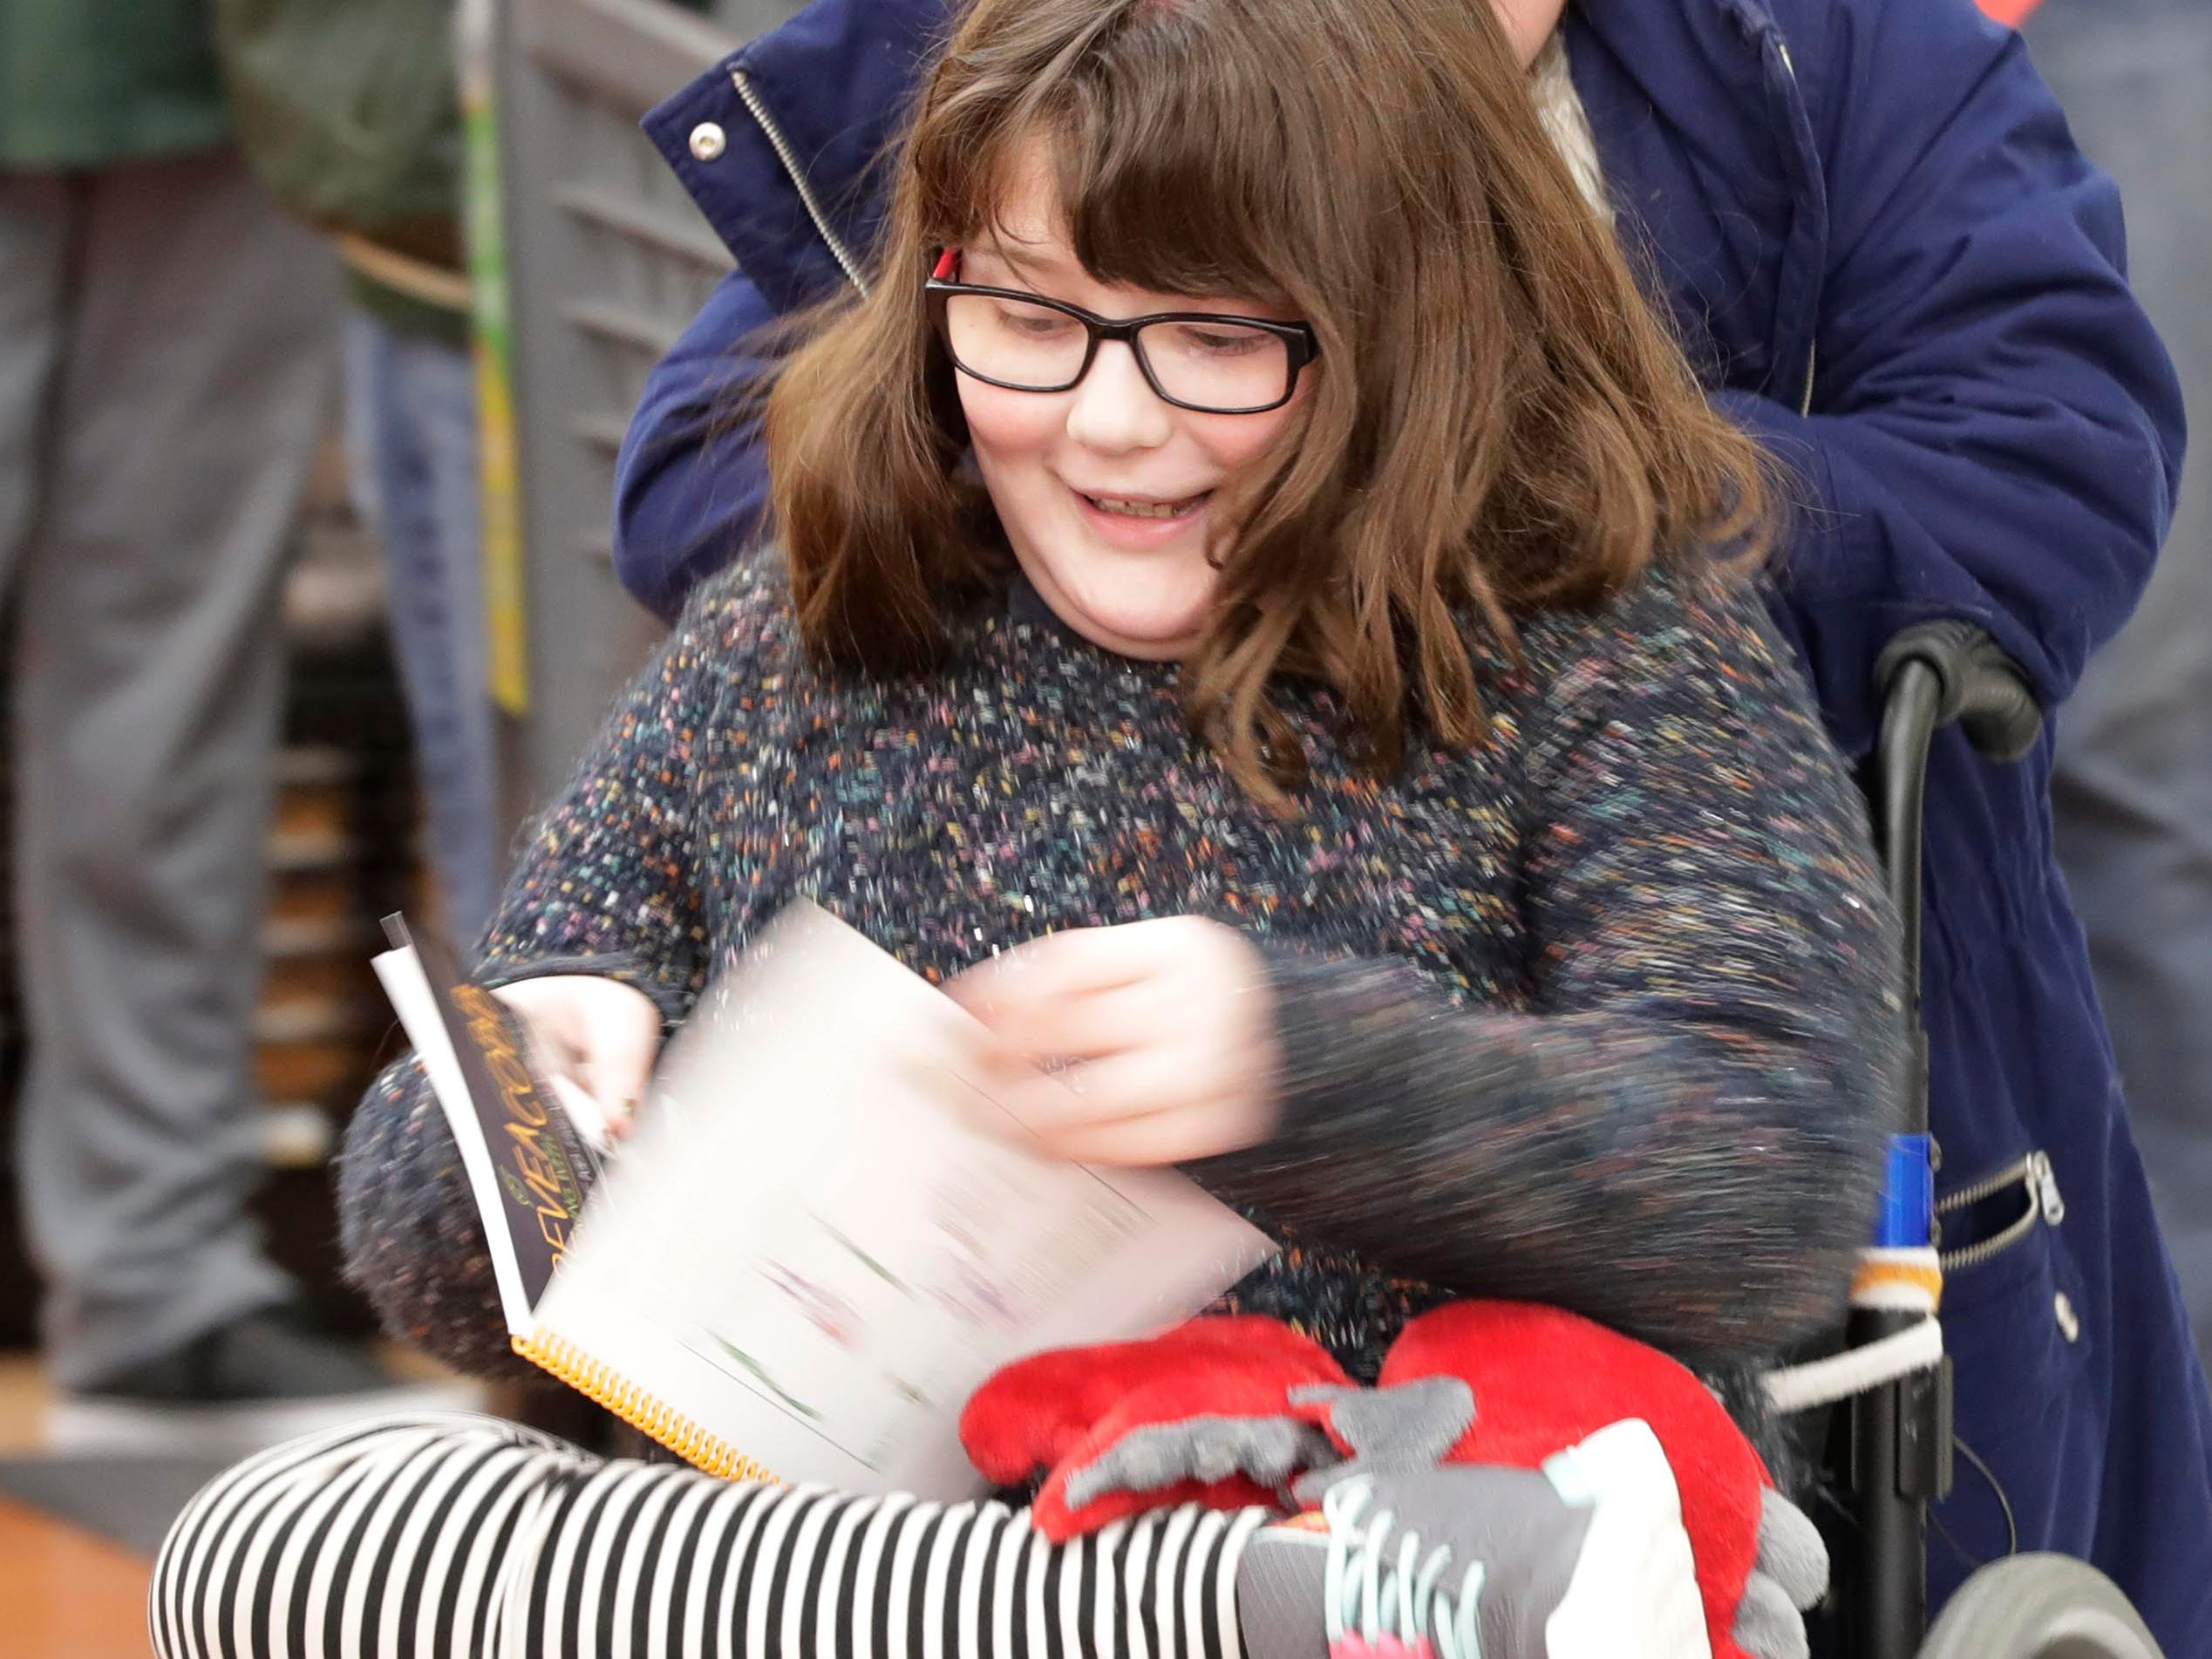 Lorelai Burke, 10, of Sheboygan, smiles at the cookbook she had signed by Green Bay Packer Randall Cobb at Festival Foods, Thursday, February 28, 2019, in Sheboygan, Wis. Burke suffers from brittle bone disease.